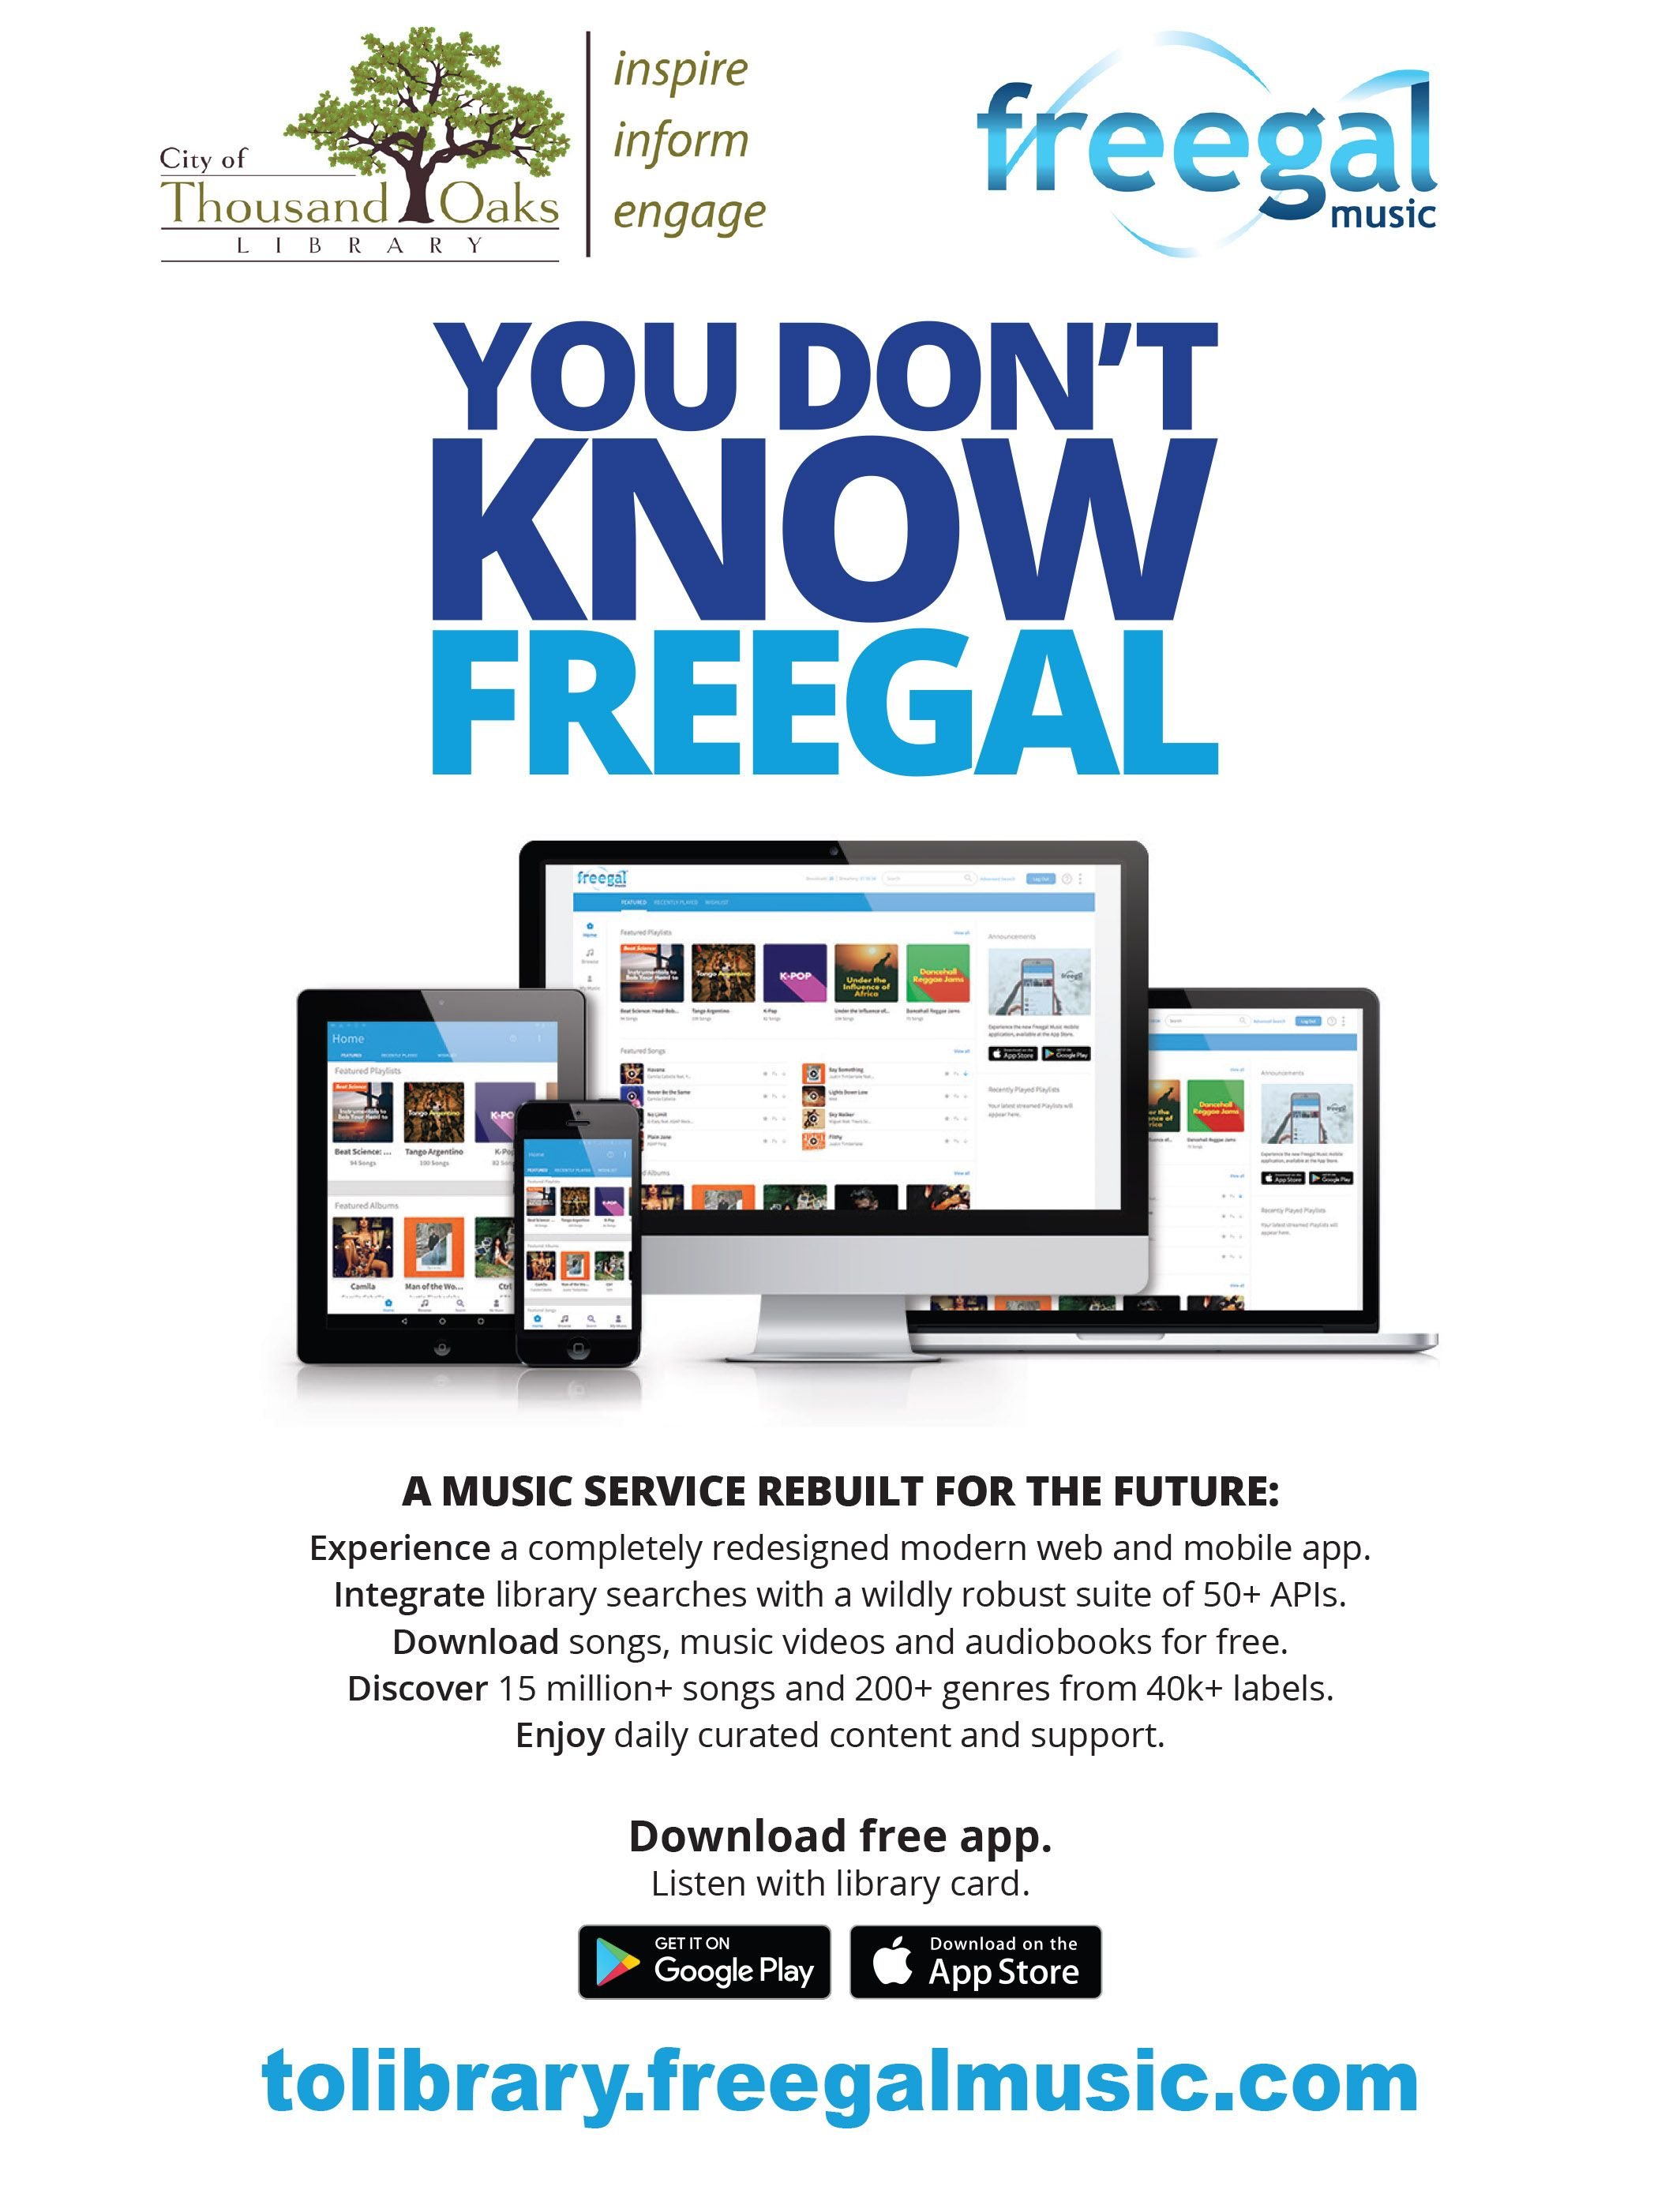 Freegal Music allows you to download songs, music videos and